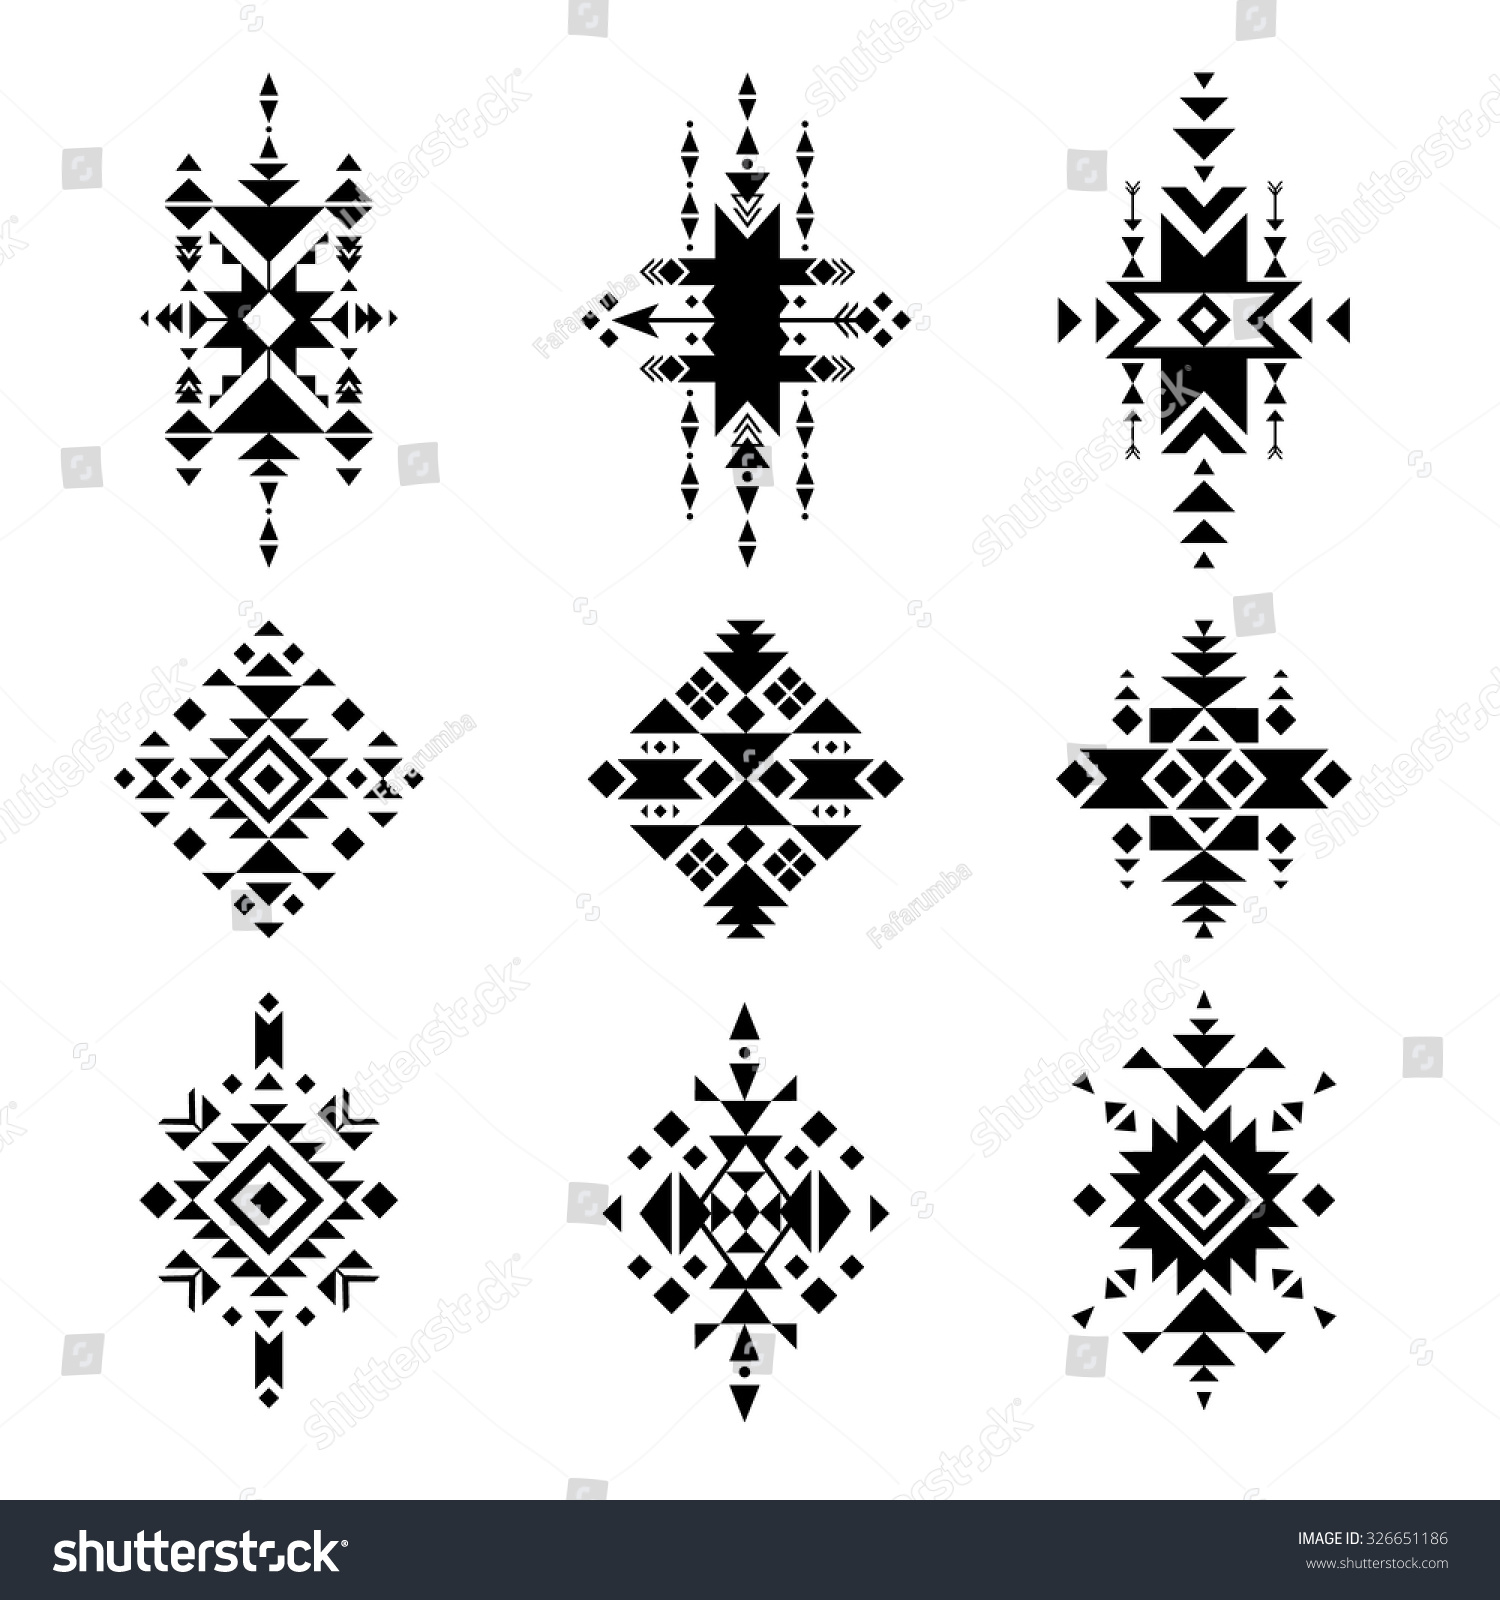 Native american ornaments - Vector Tribal Elements Native American Ornament